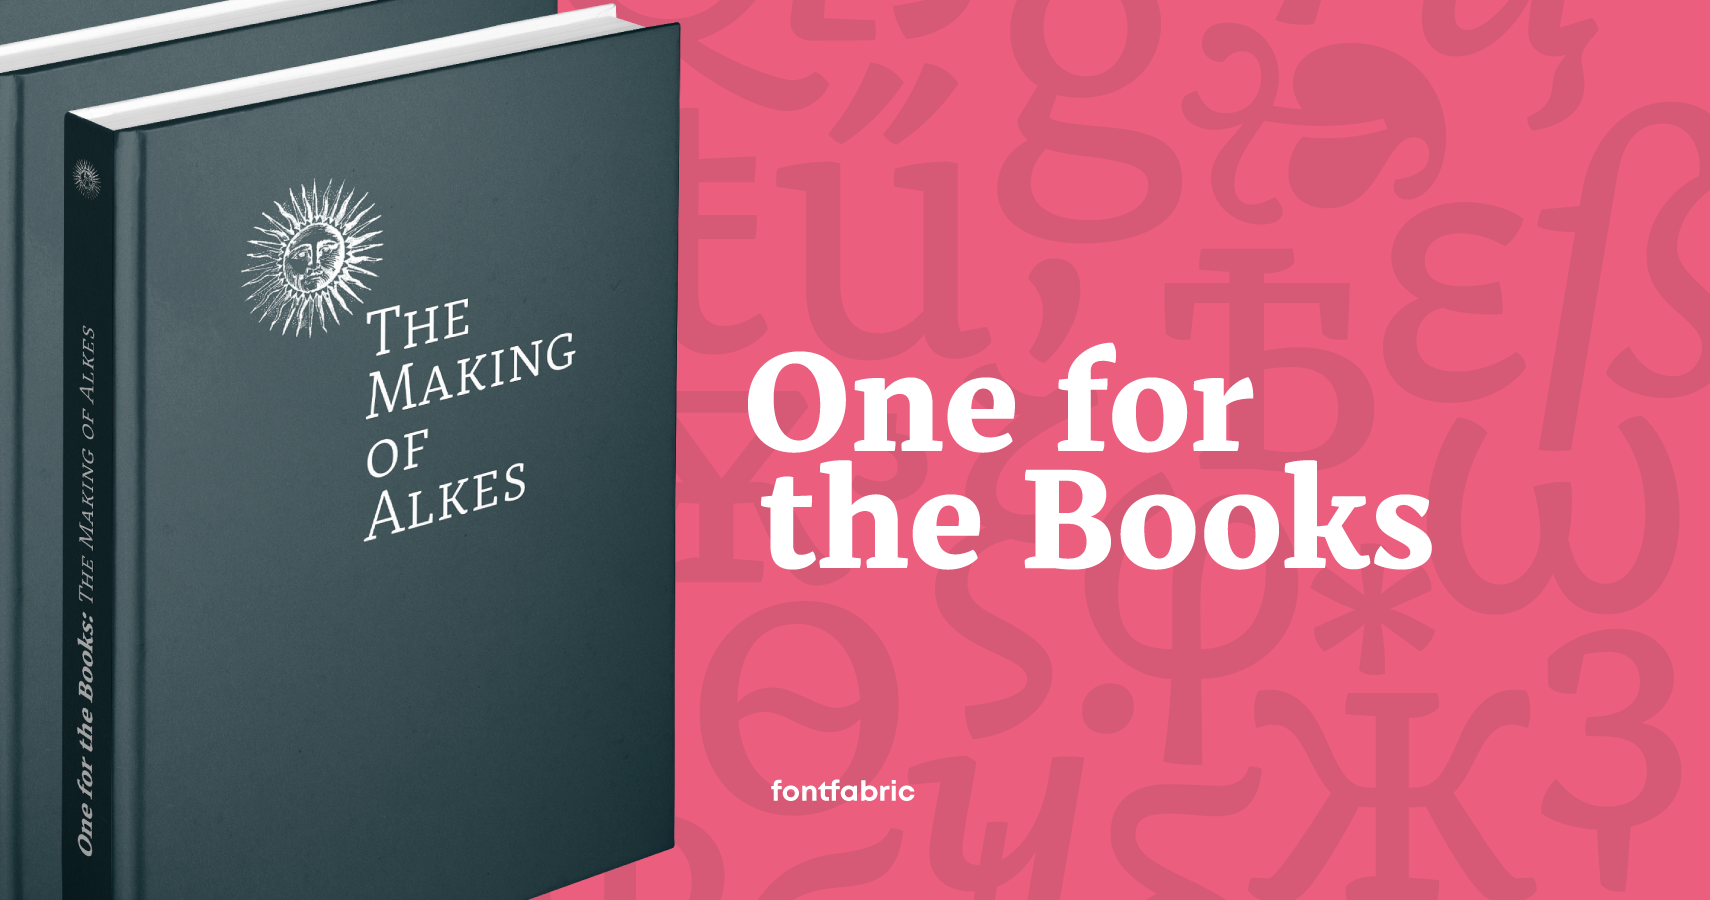 One For The Books: The Making of Alkes